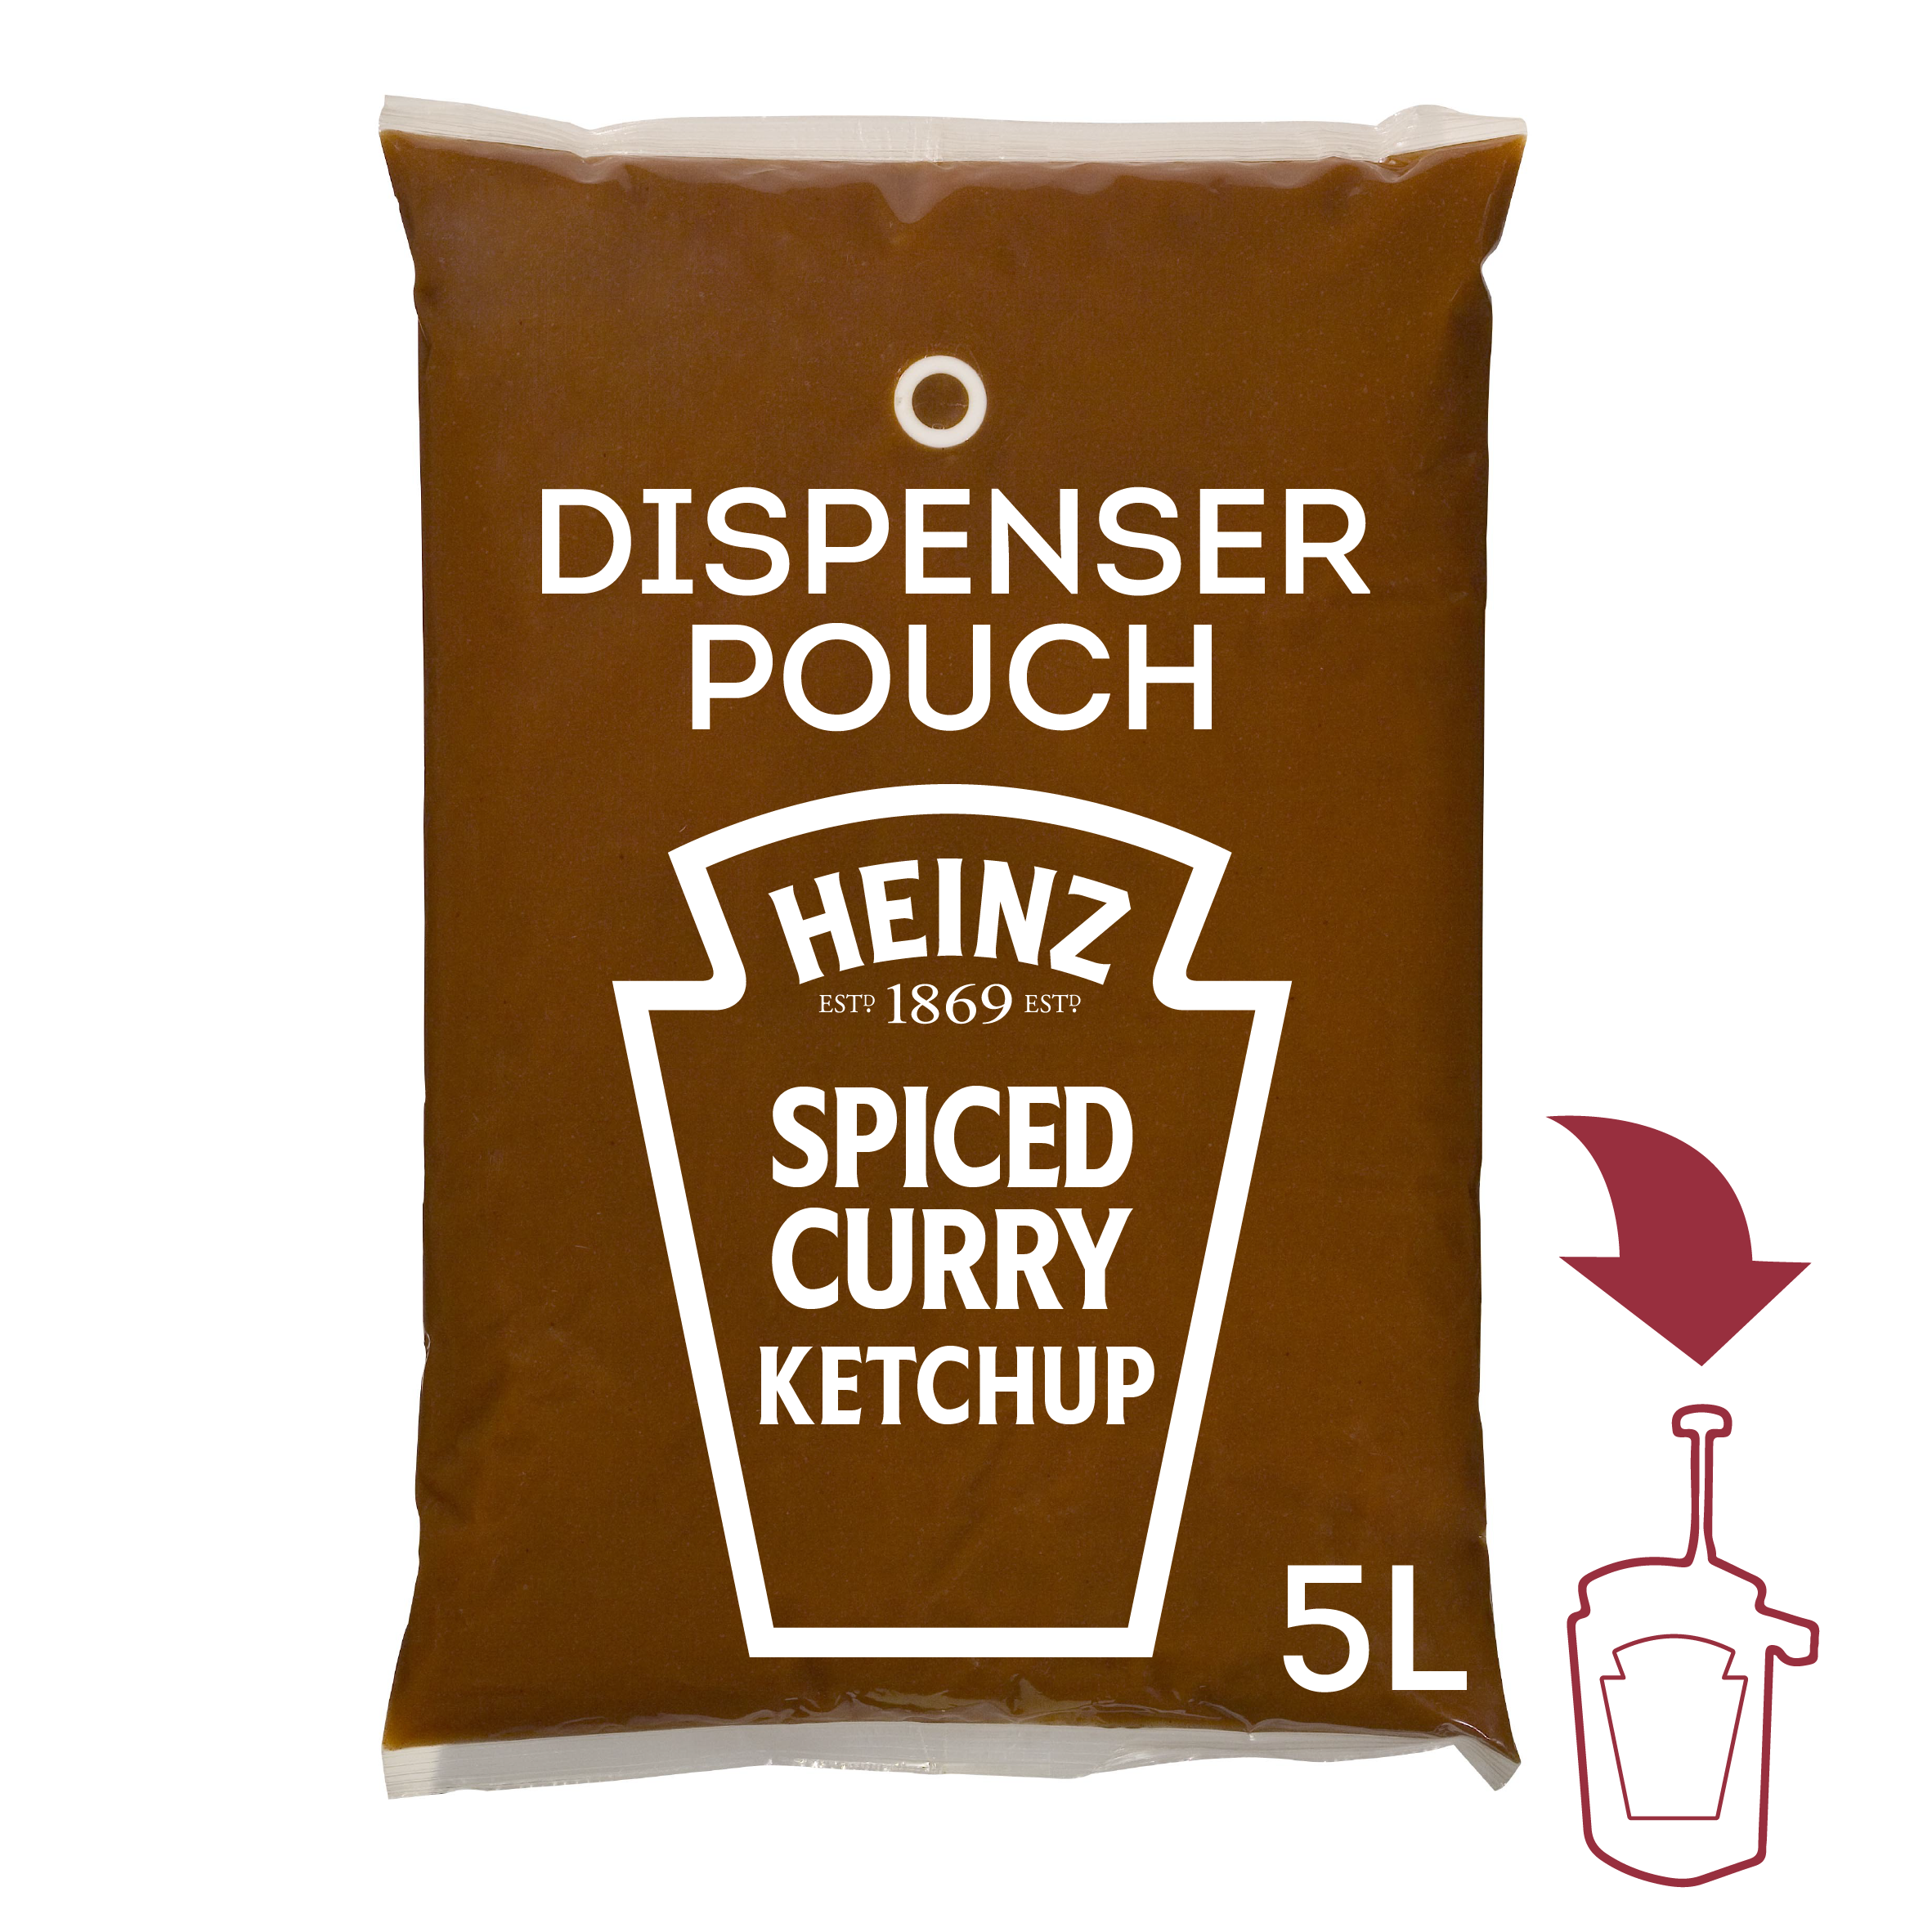 Heinz SOM Pittige Curry Gewurz 5L image